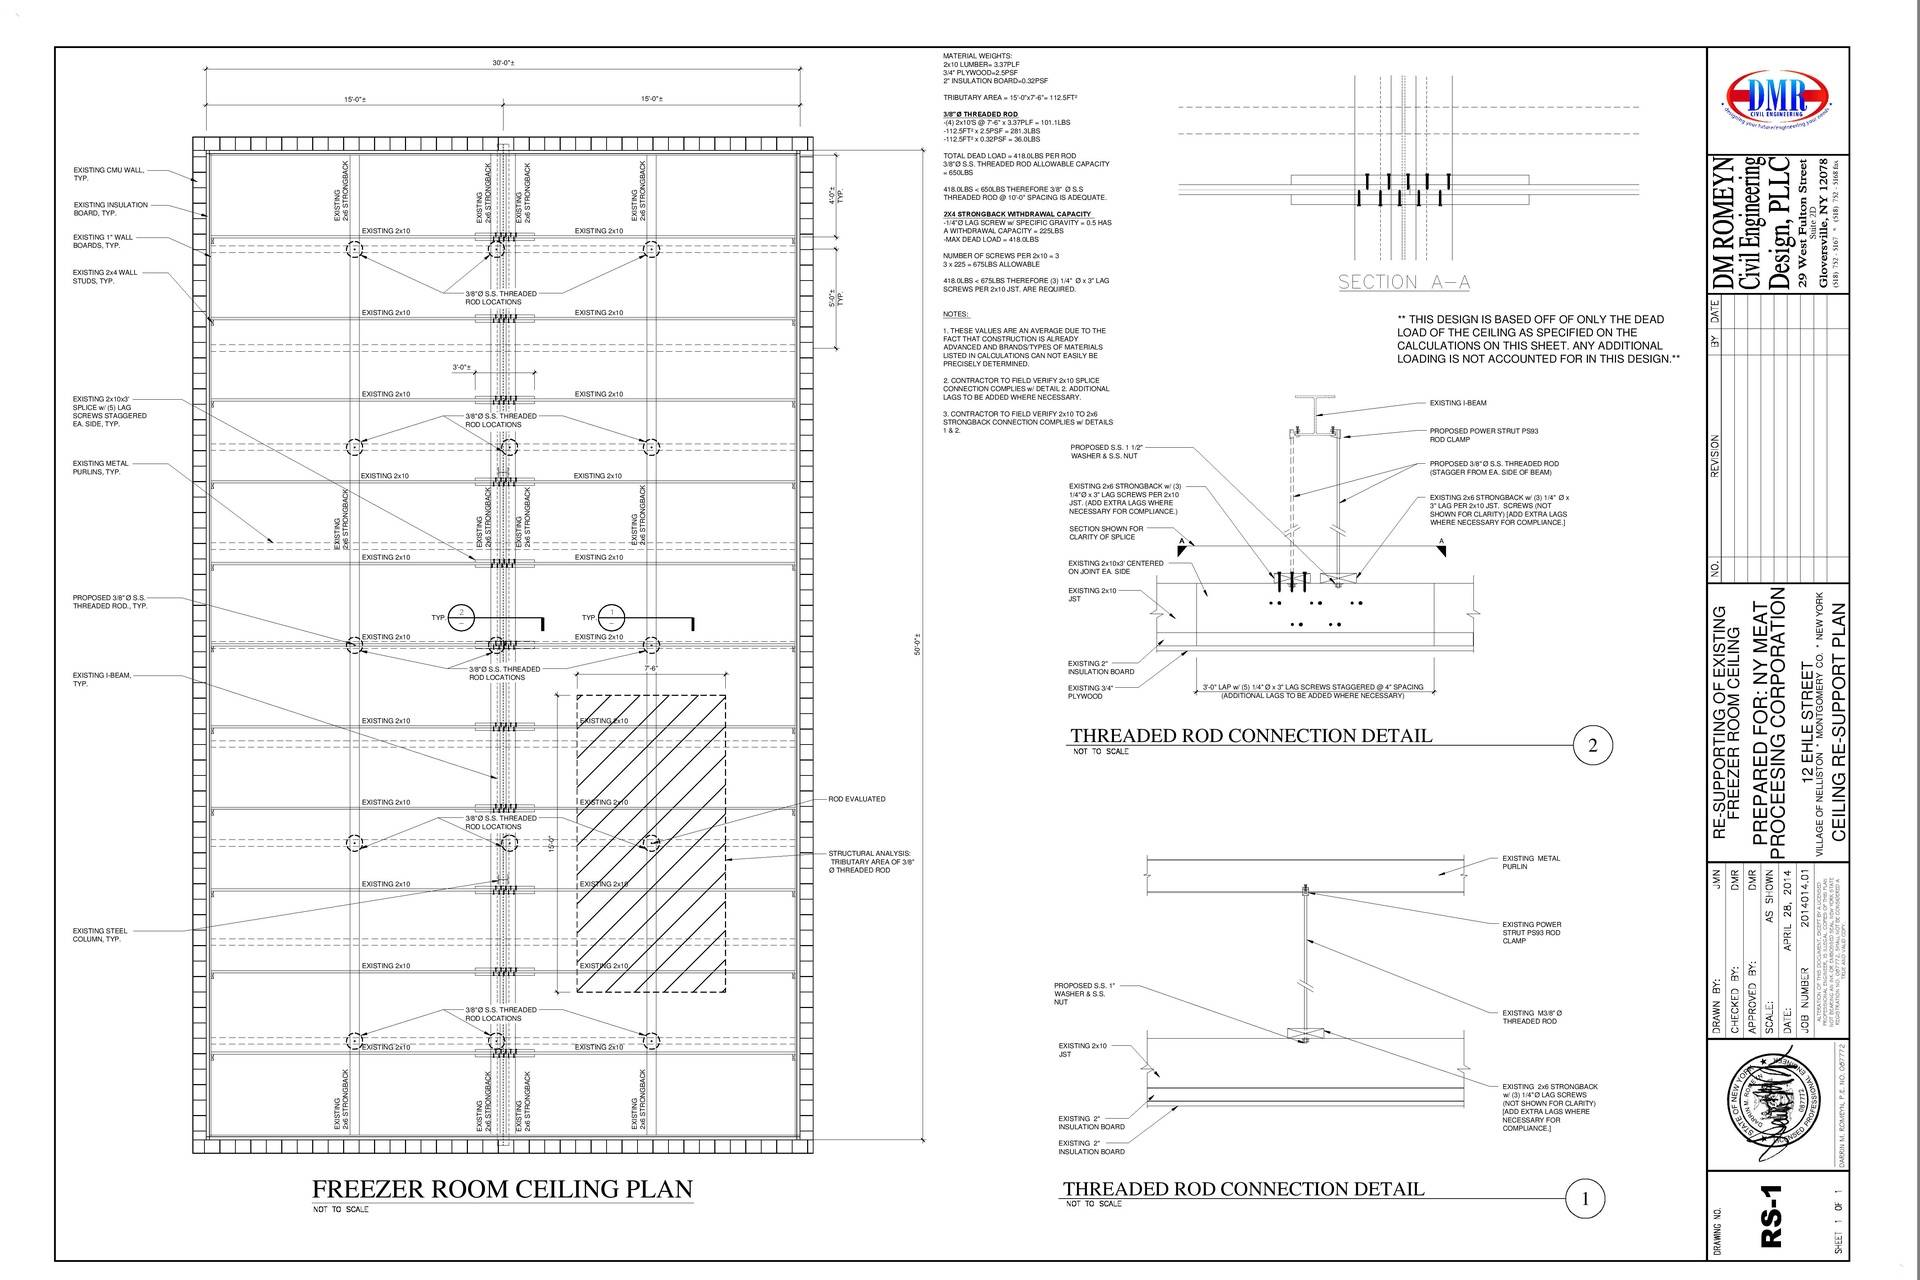 Structural Design for NY Meat Processing Corporation